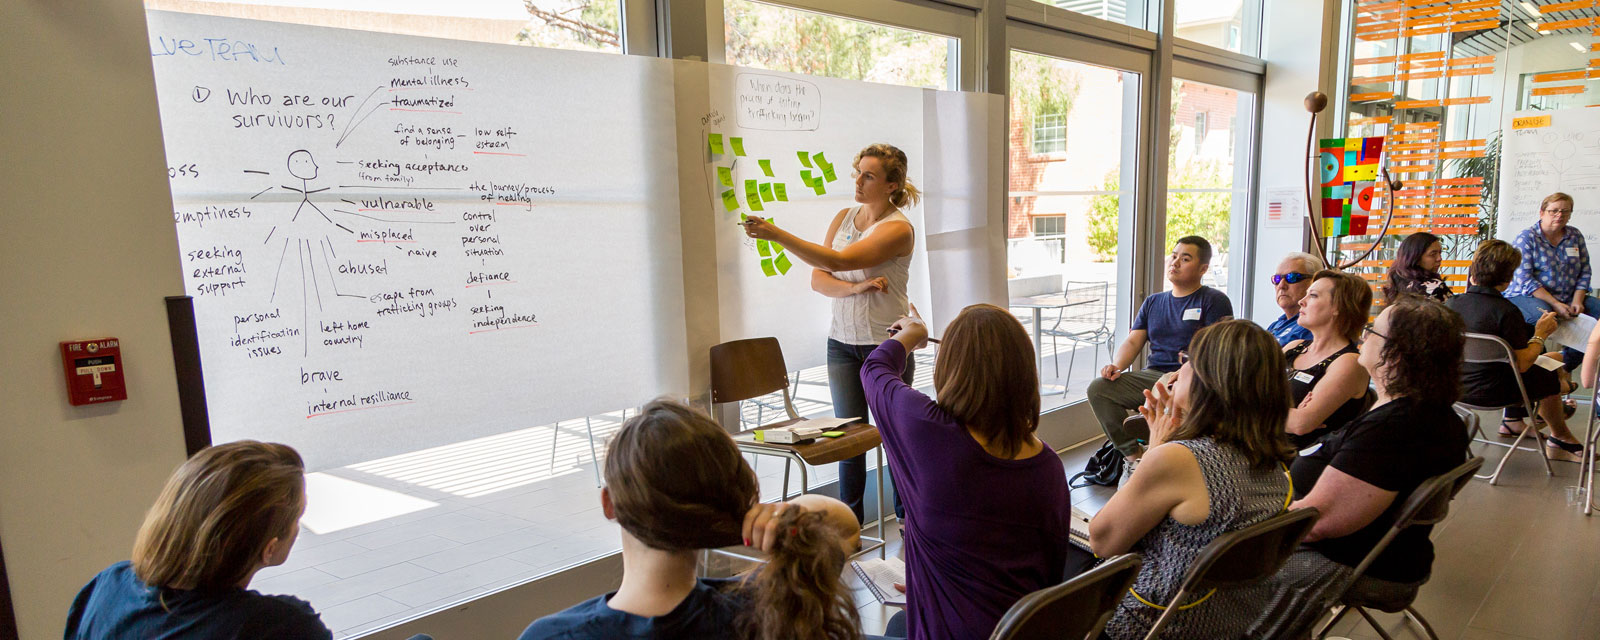 A group discusses ideas in front of a banner of sticky notes during an Innovation for Justice workshop on human trafficking survivors